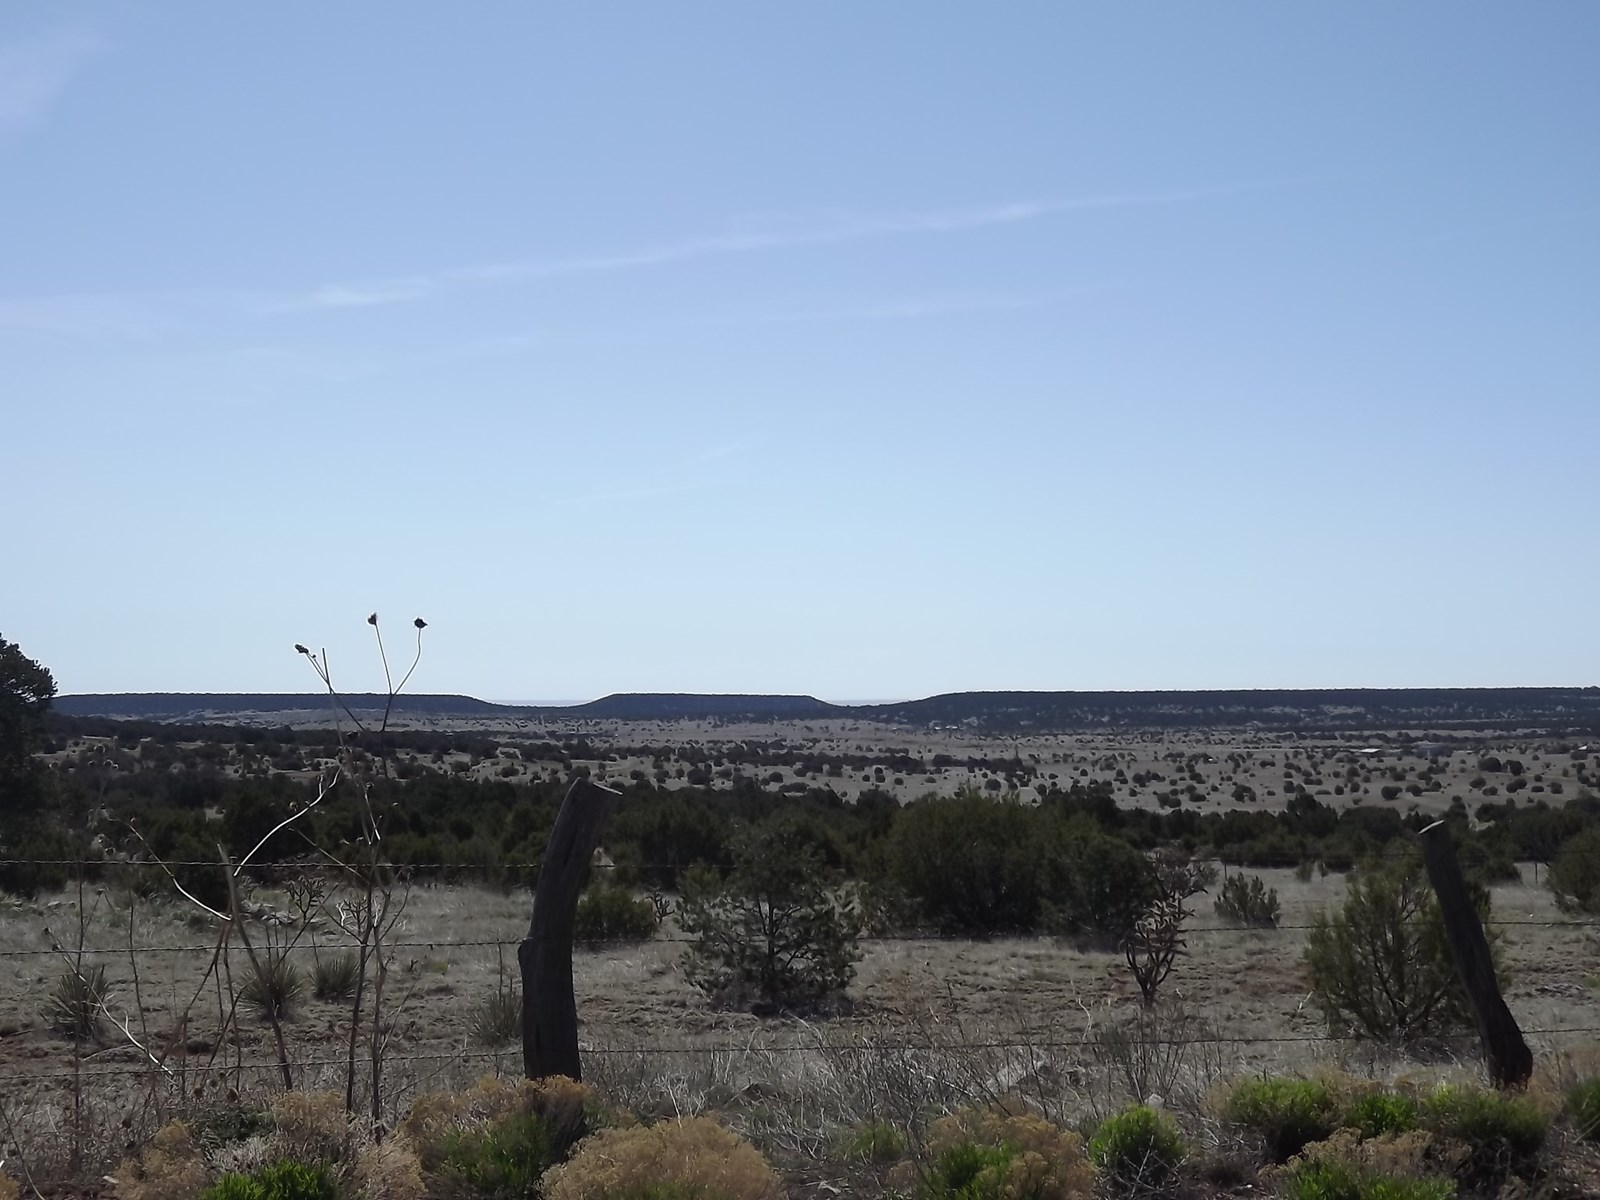 Central New Mexico Mountain Property For Sale 57 Acres